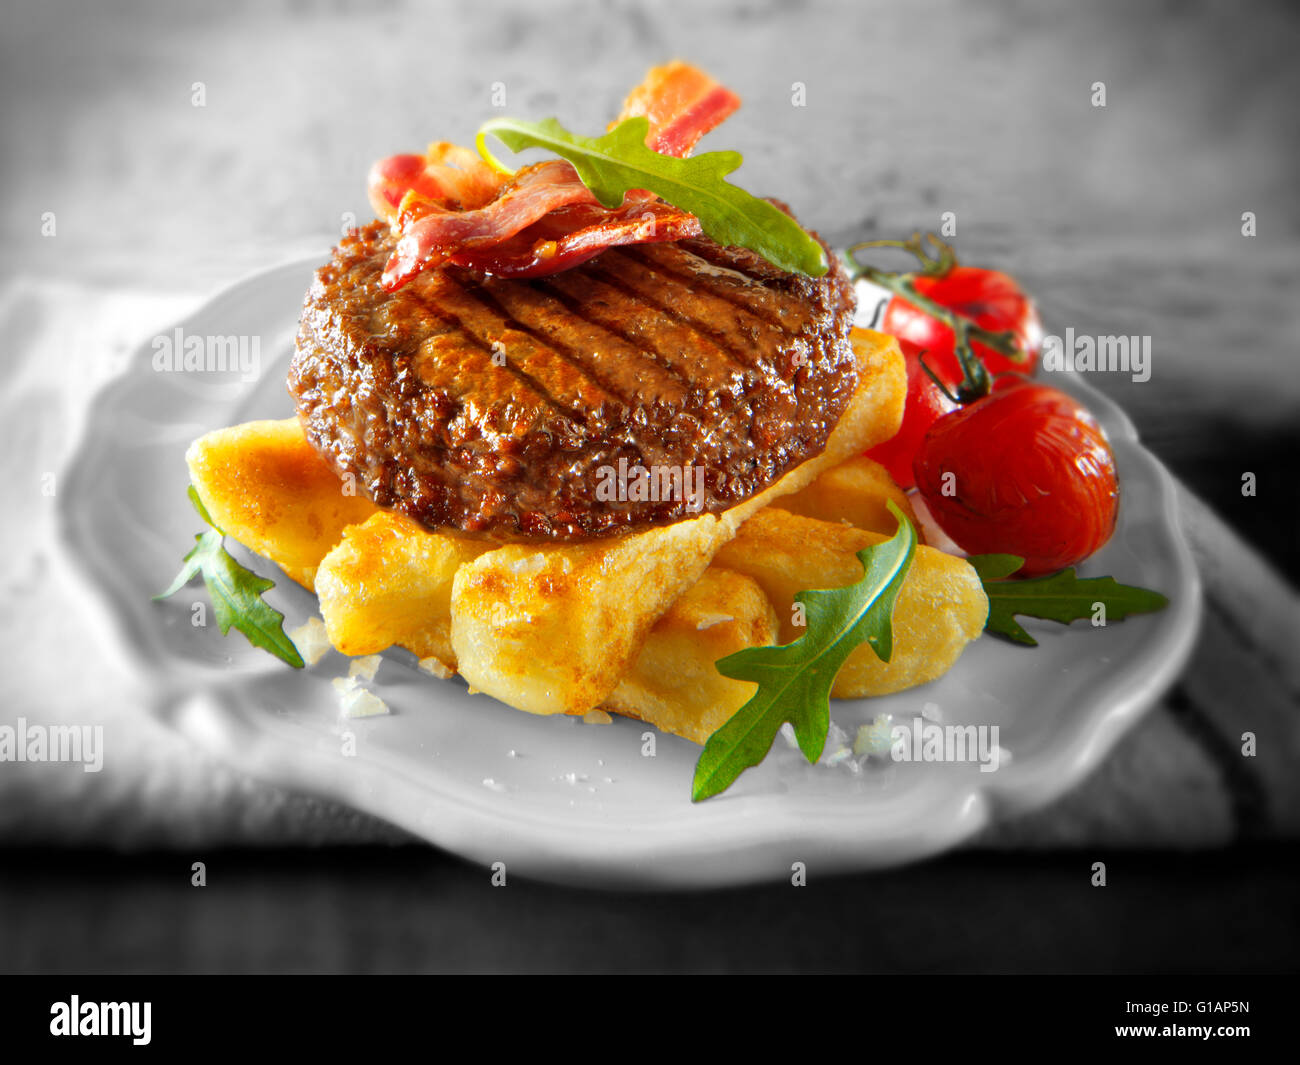 Char grilled beef burger or hamburger and bacon with chunky chips and salad - Stock Image